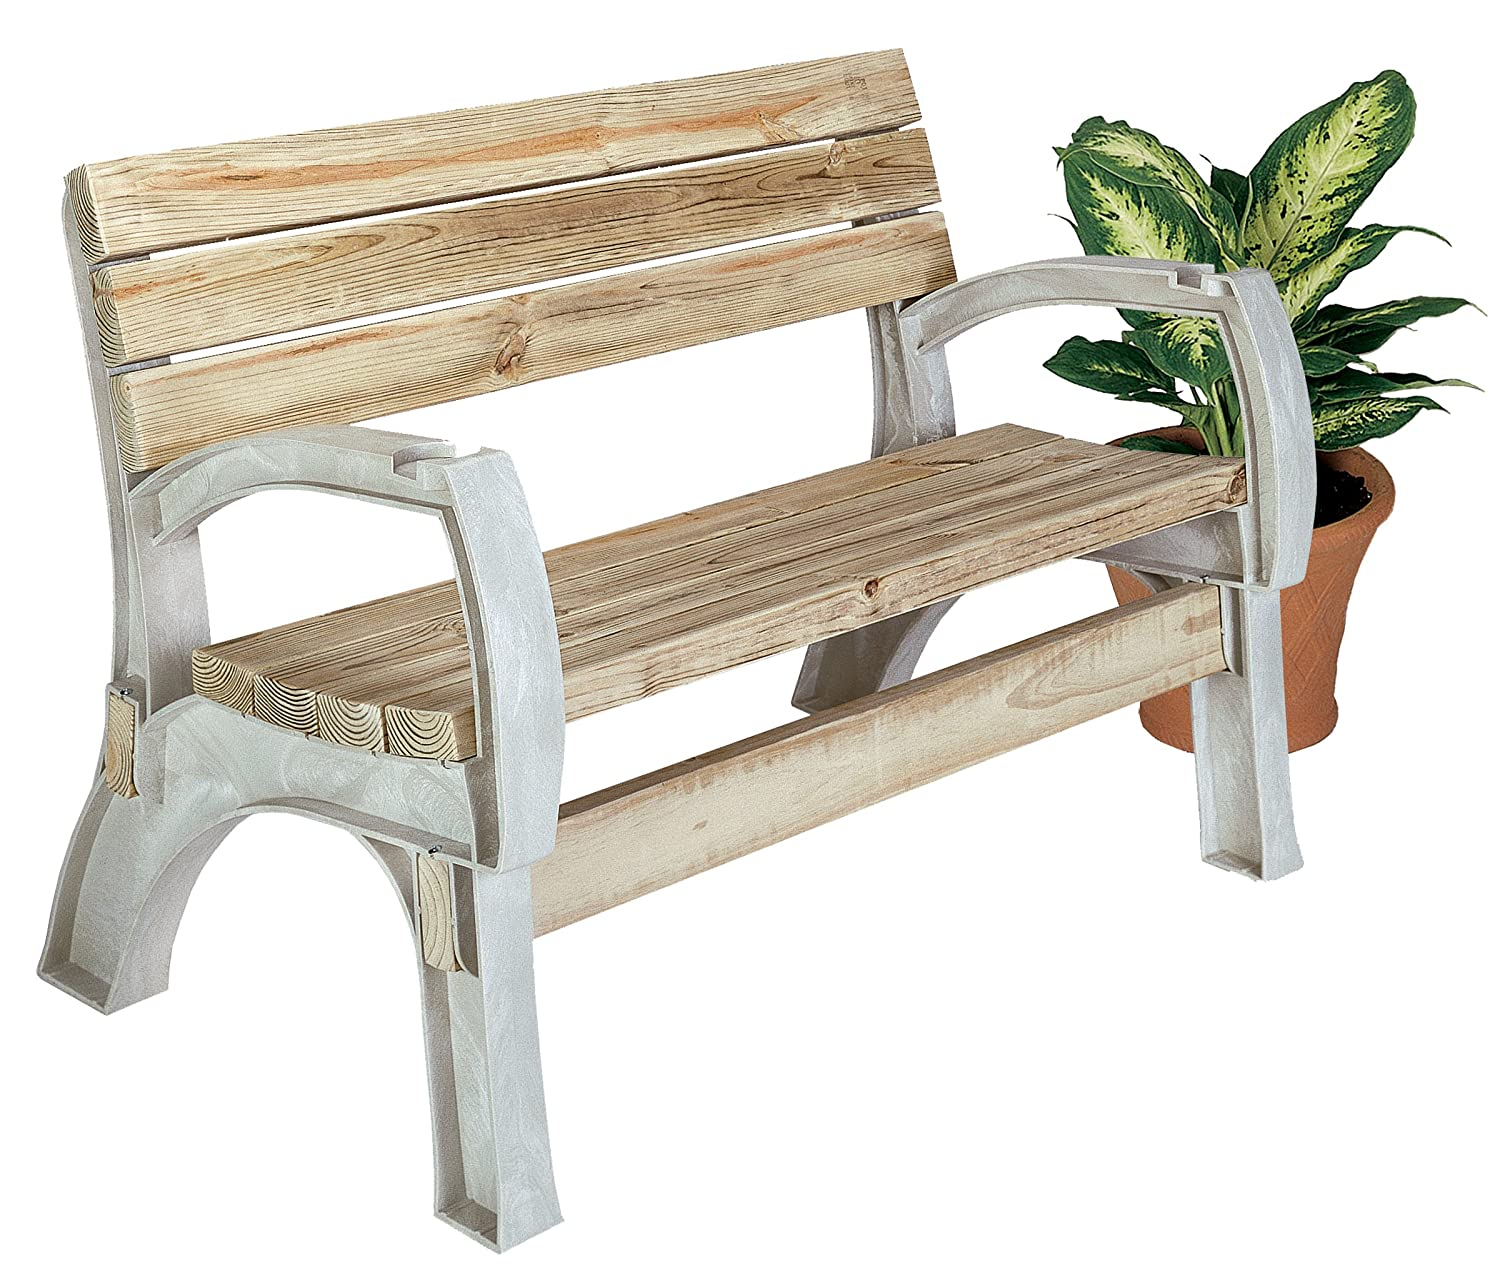 2x4 Basics - Any Size Chair or Bench - Just add CLS Timber: Amazon.co.uk:  Garden & Outdoors